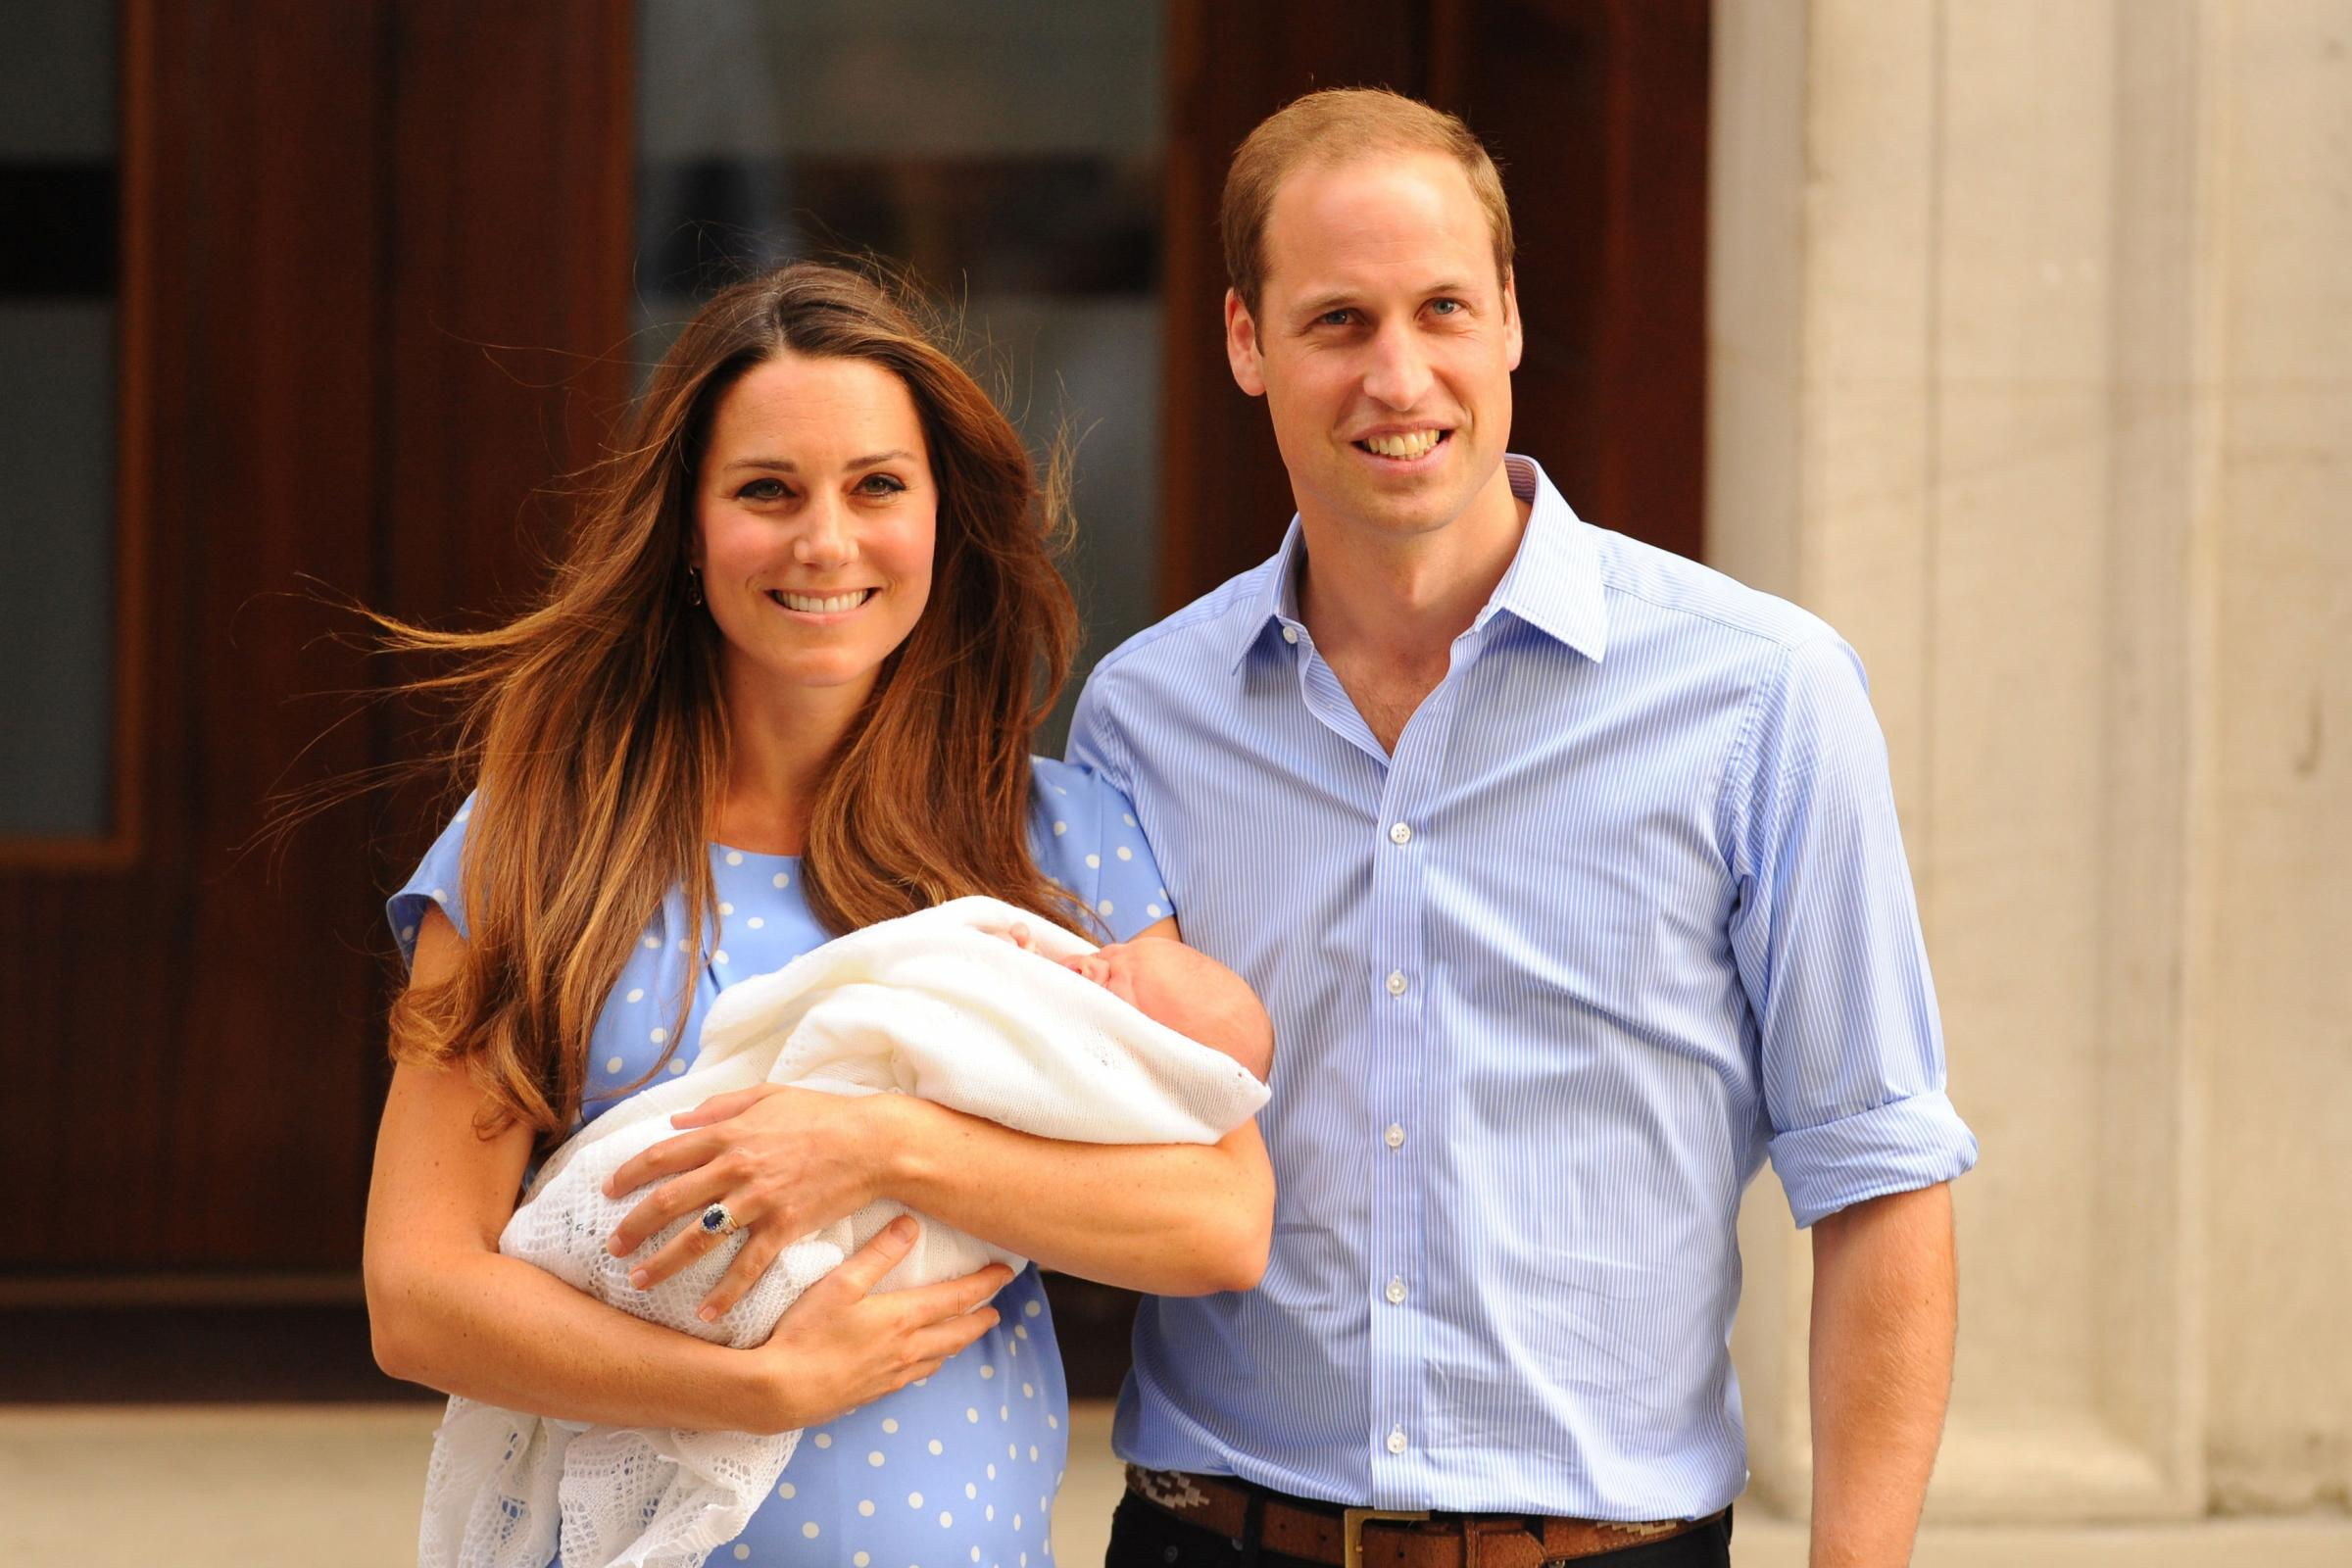 ROYAL BABY: Her Royal Highness The Duchess of Cambridge has had a baby boy